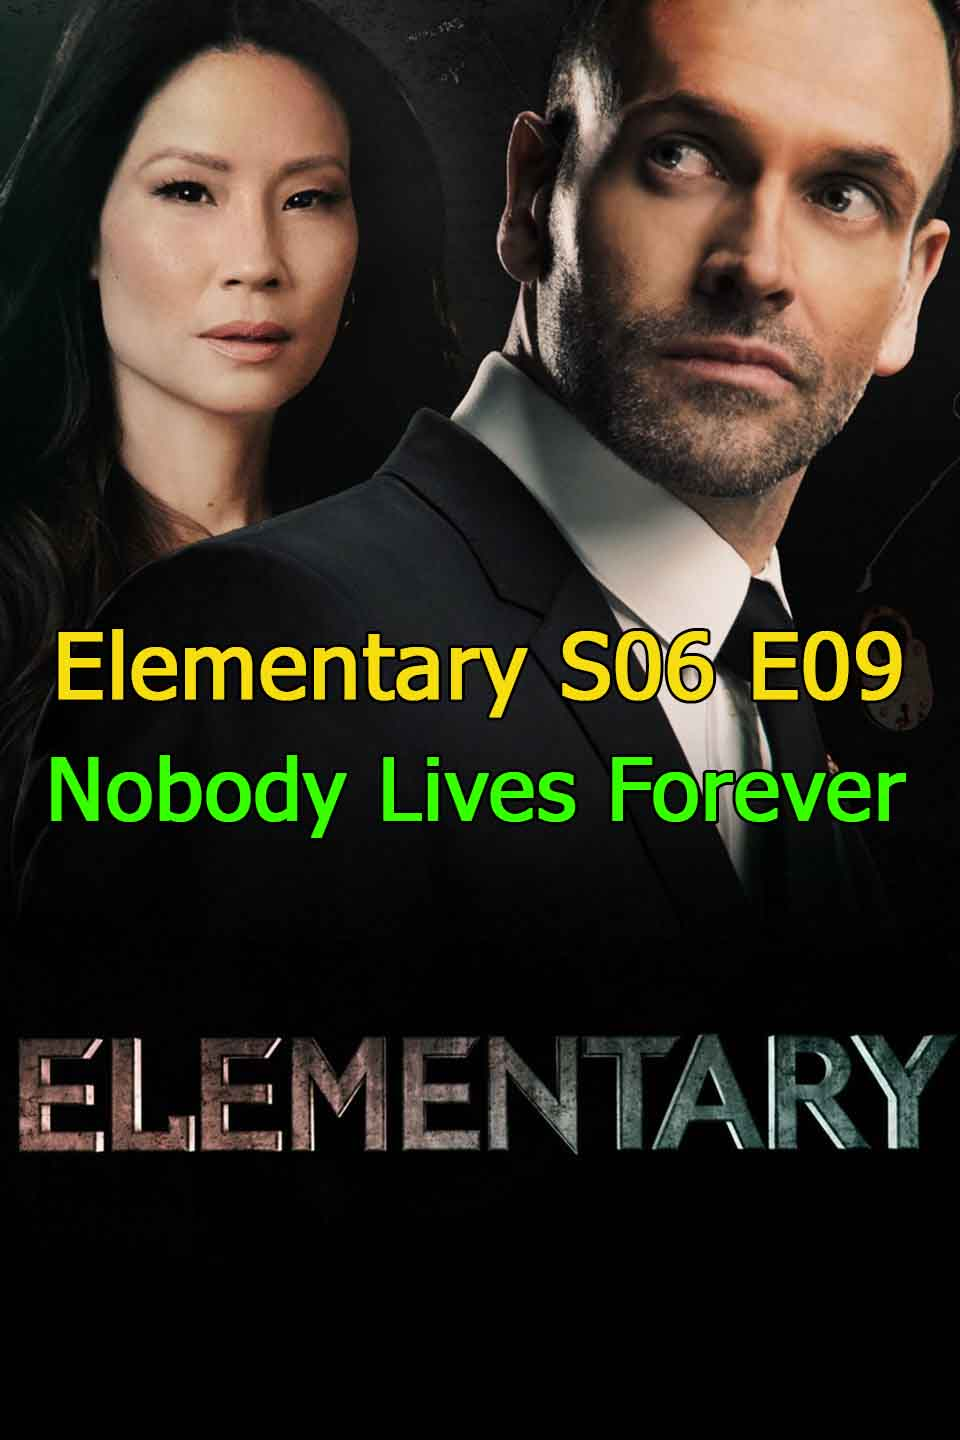 Watch Elementary Season 6 Episode 9 Nobody Lives Forever thumbnail